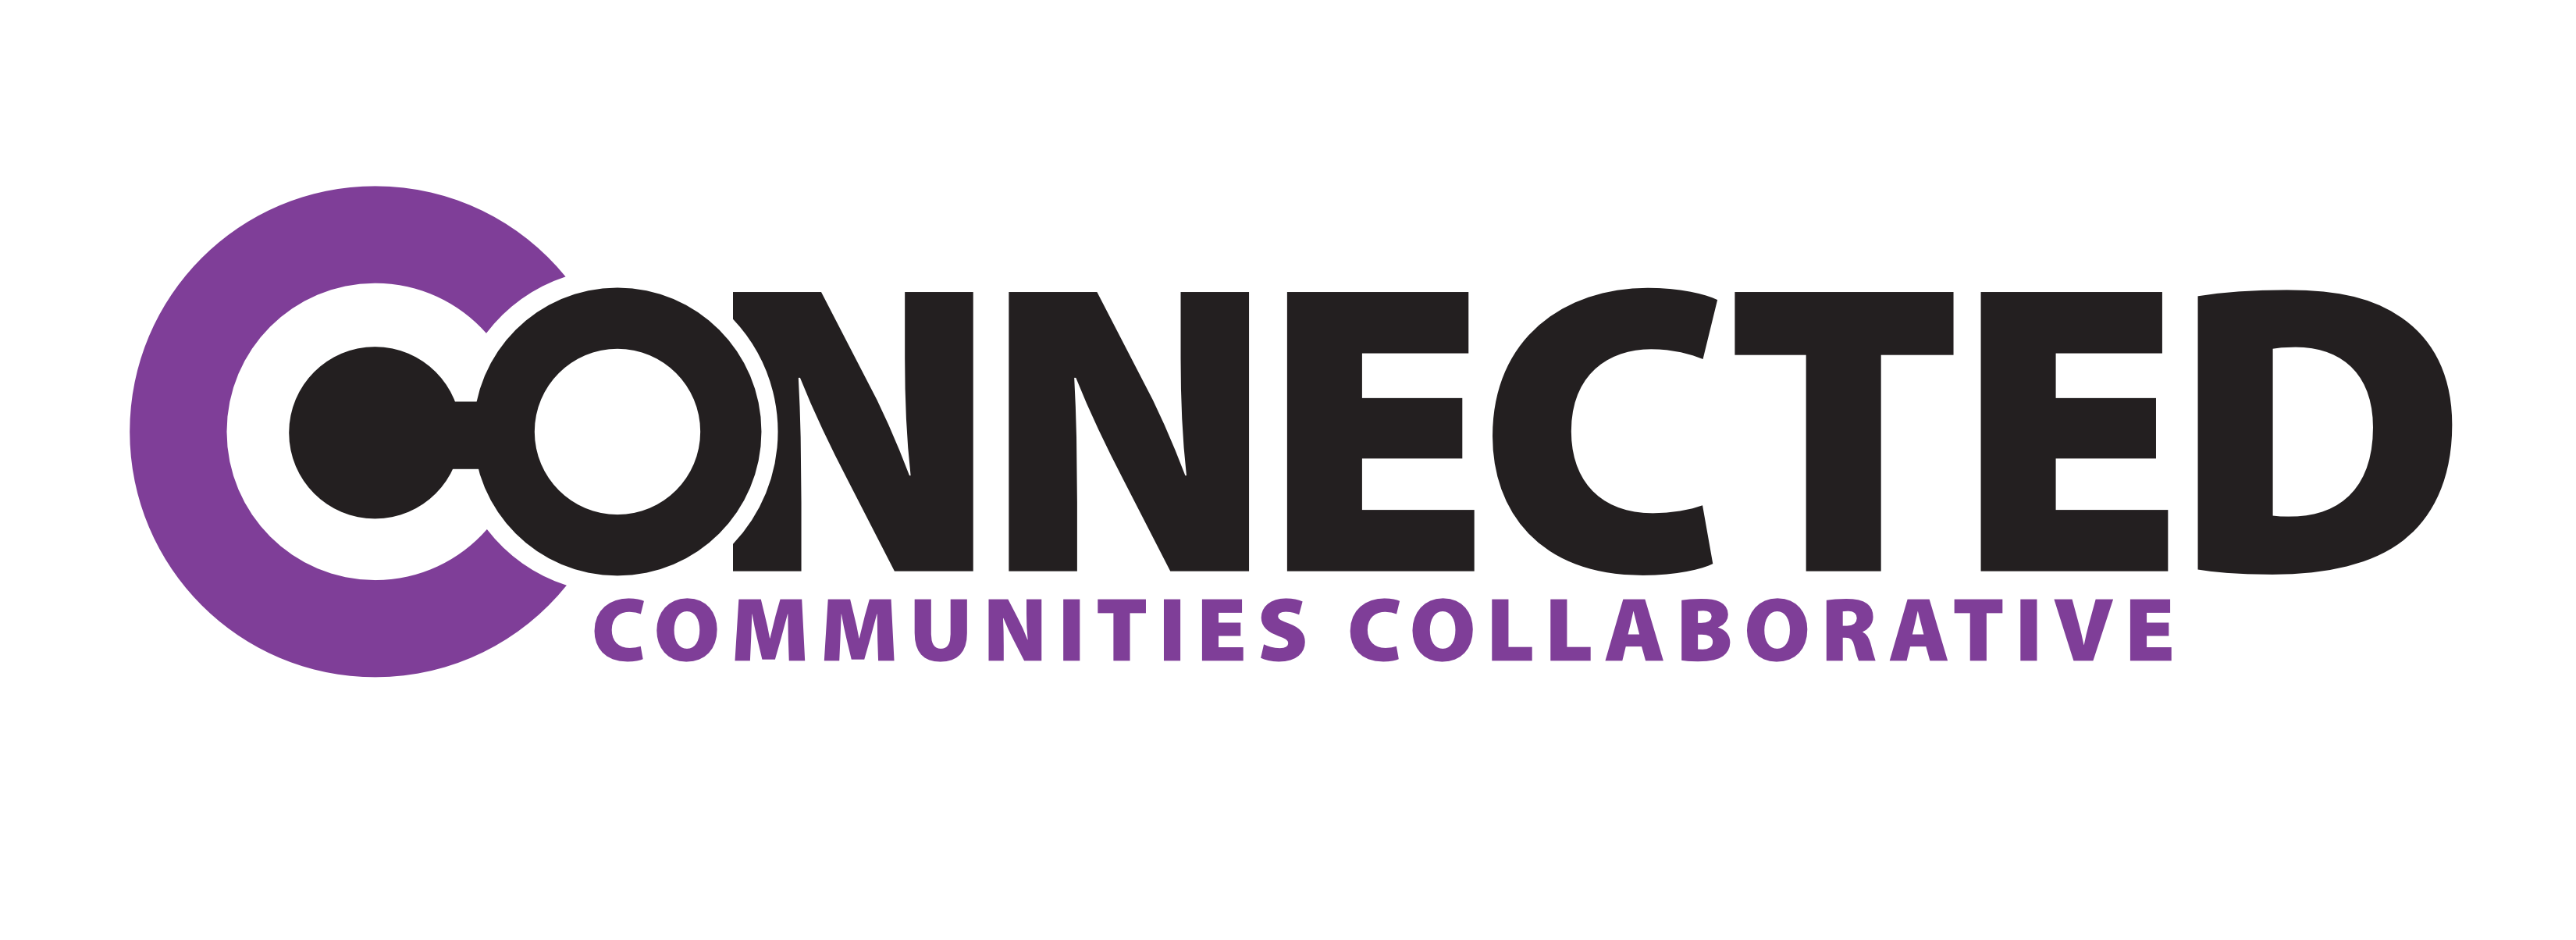 Connected Communities Collaborative logo